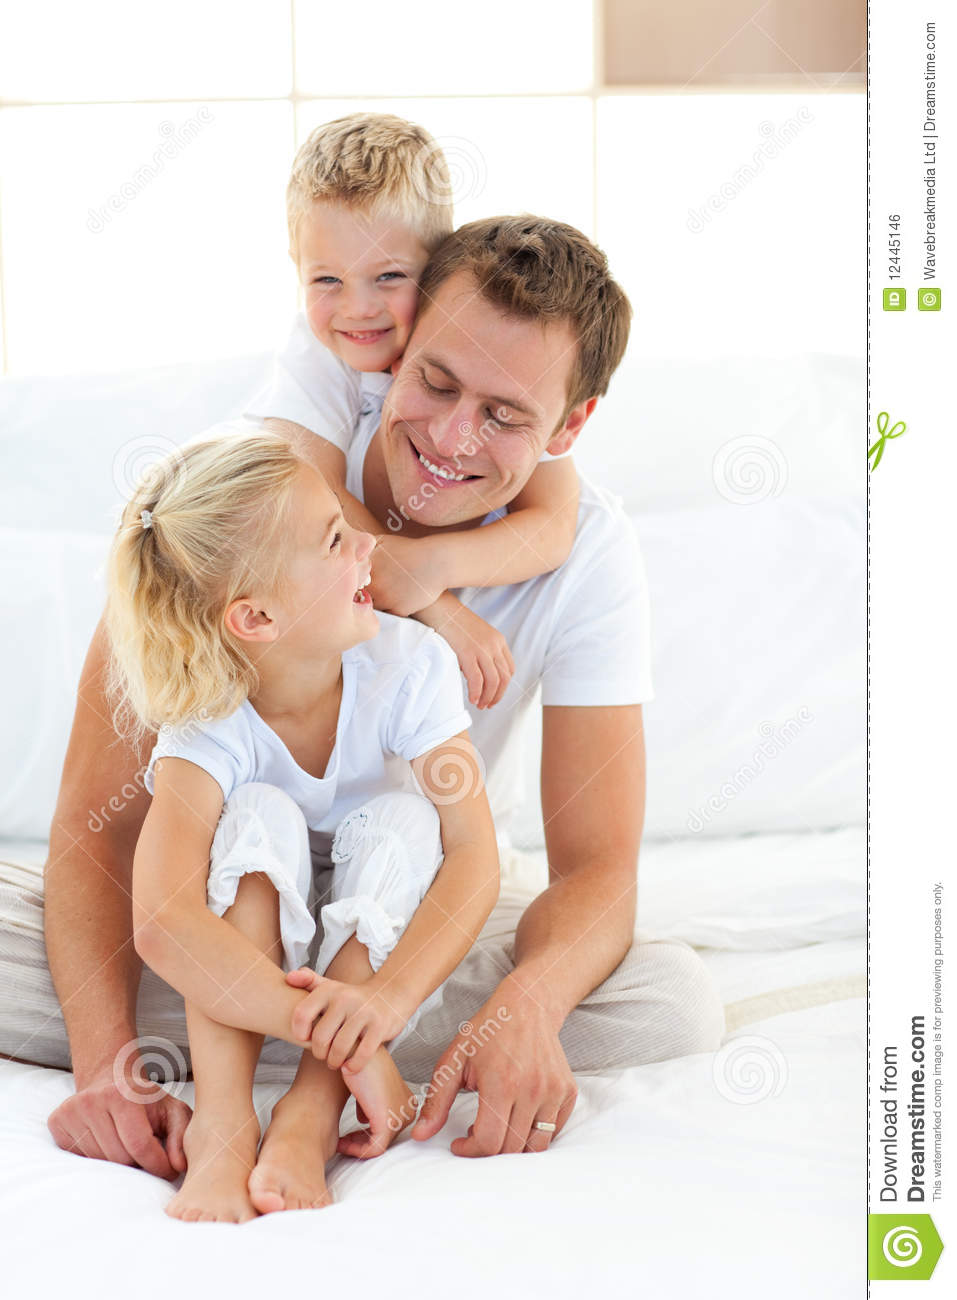 ... With His Children On A Bed Royalty Free Stock Image - Image: 12445146